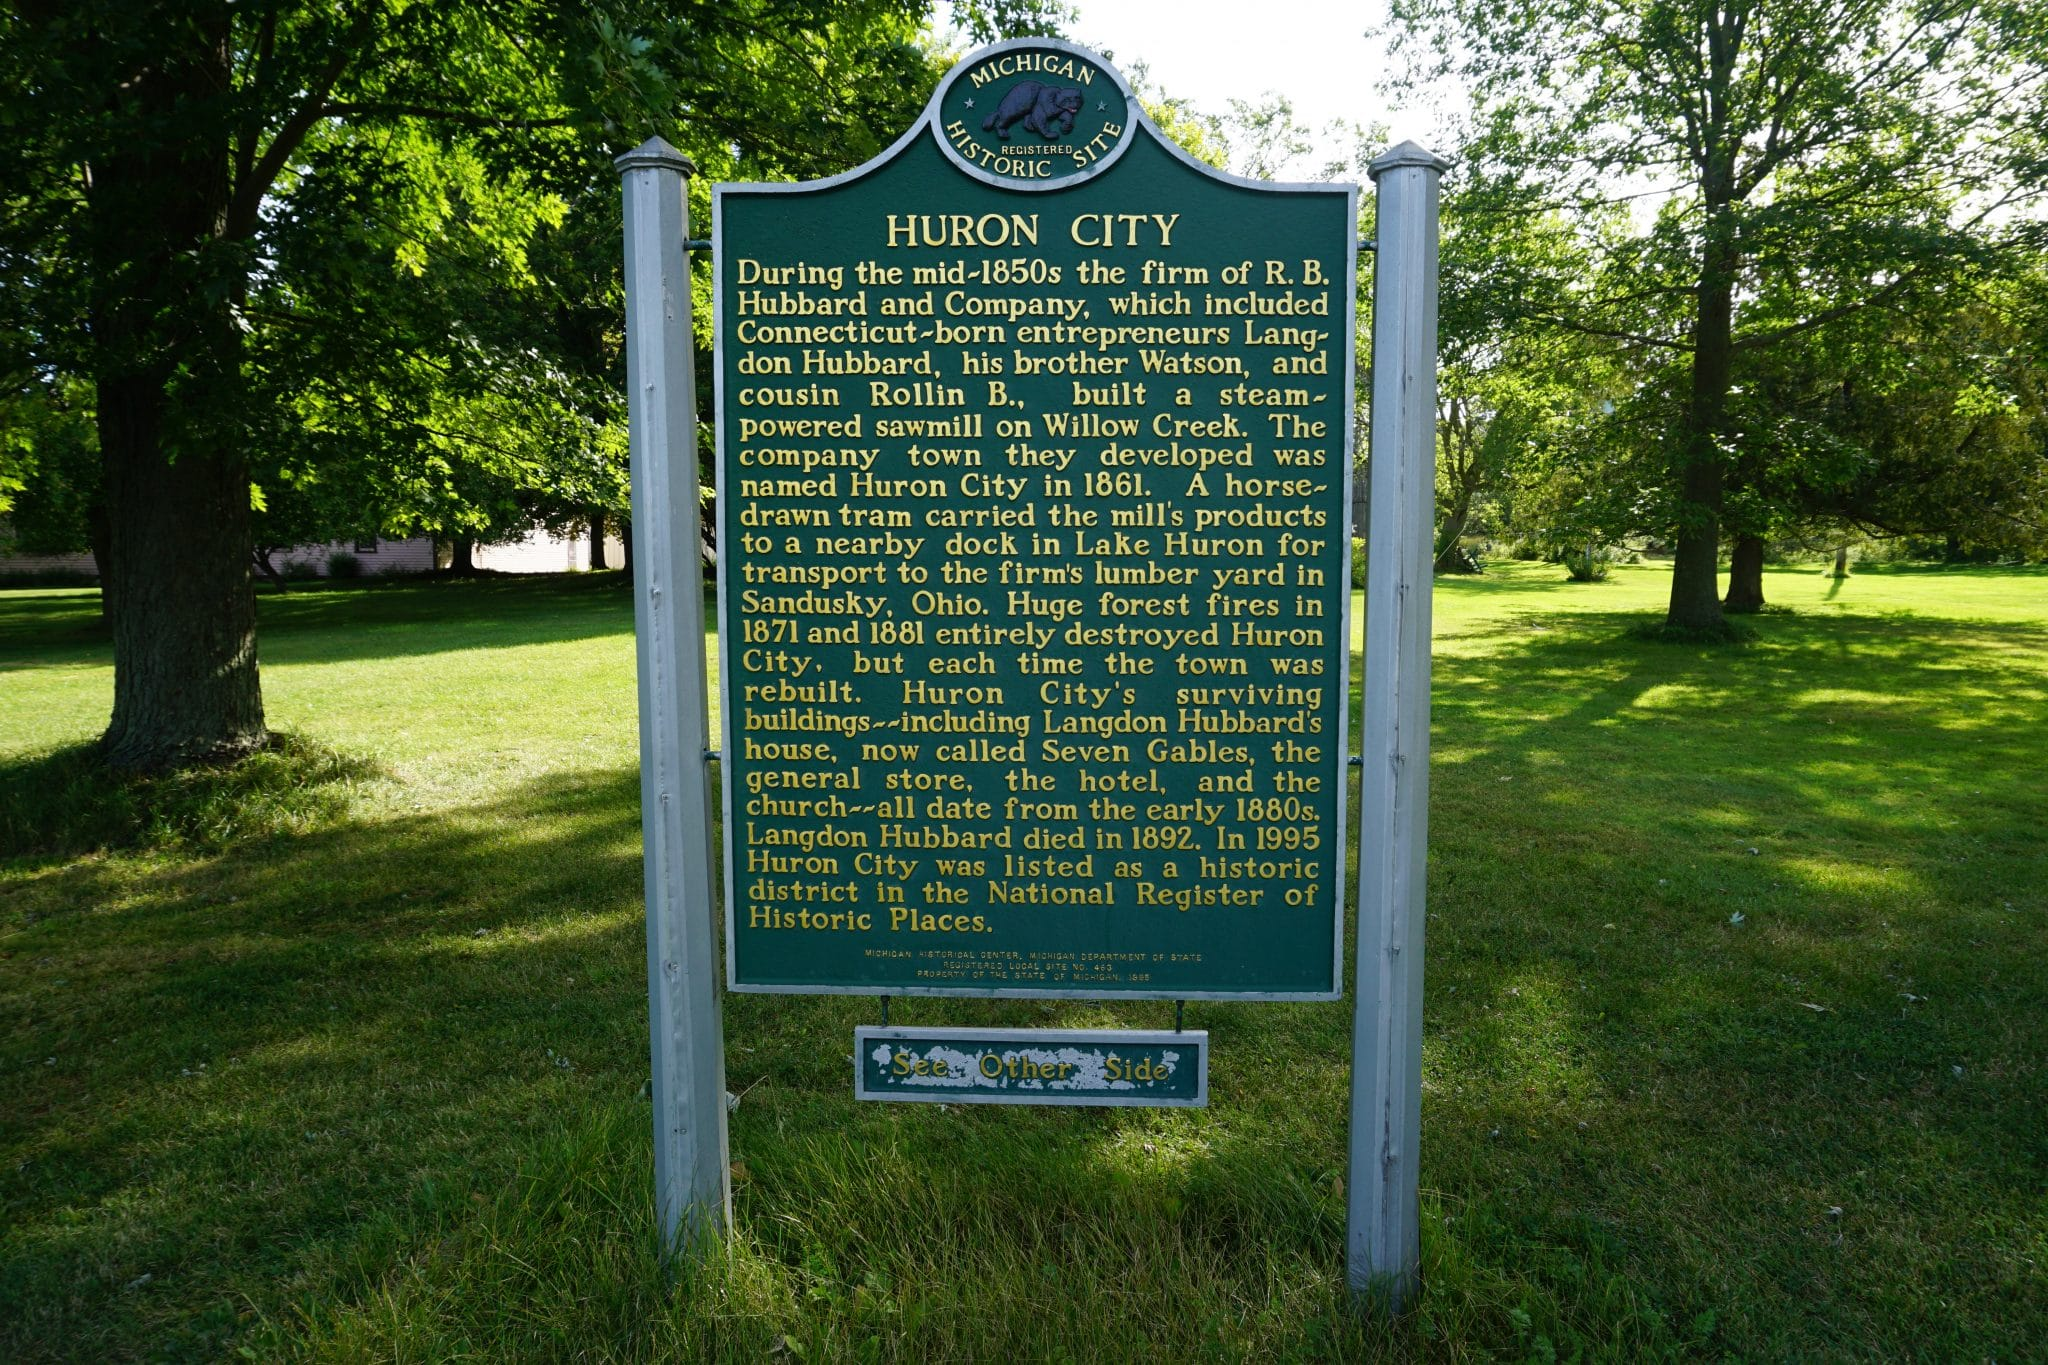 Huron City Historic Sign